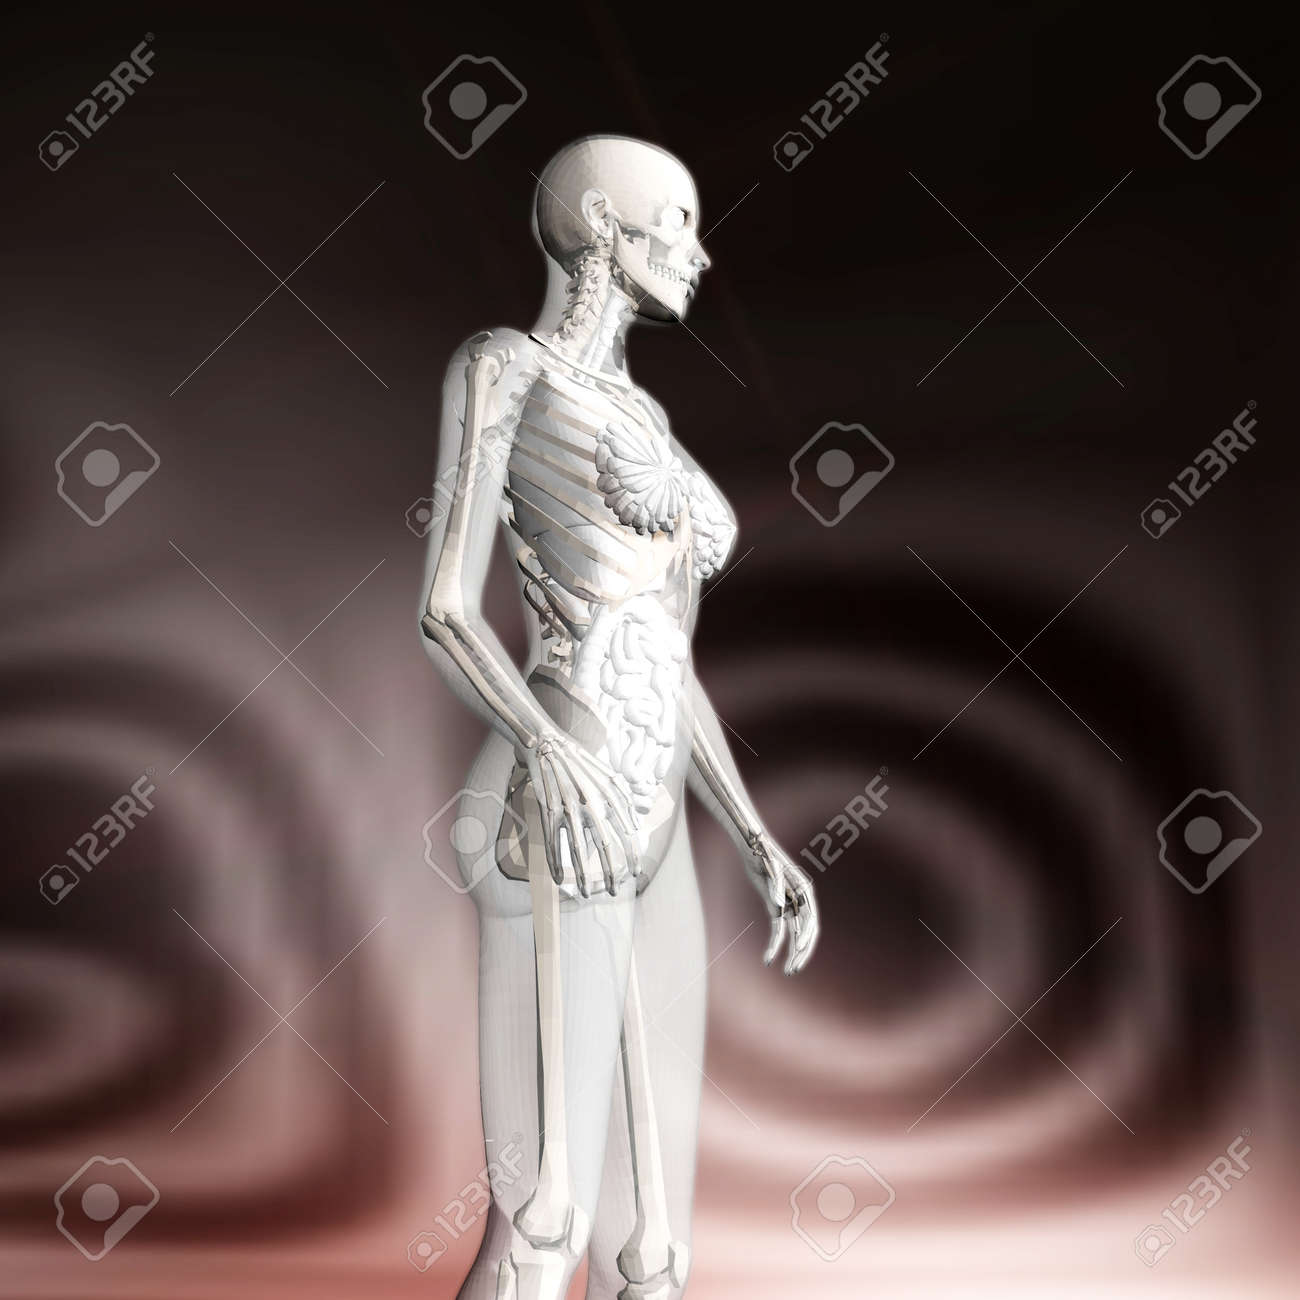 Digital 3D Rendering Of The Female Human Anatomy Stock Photo ...